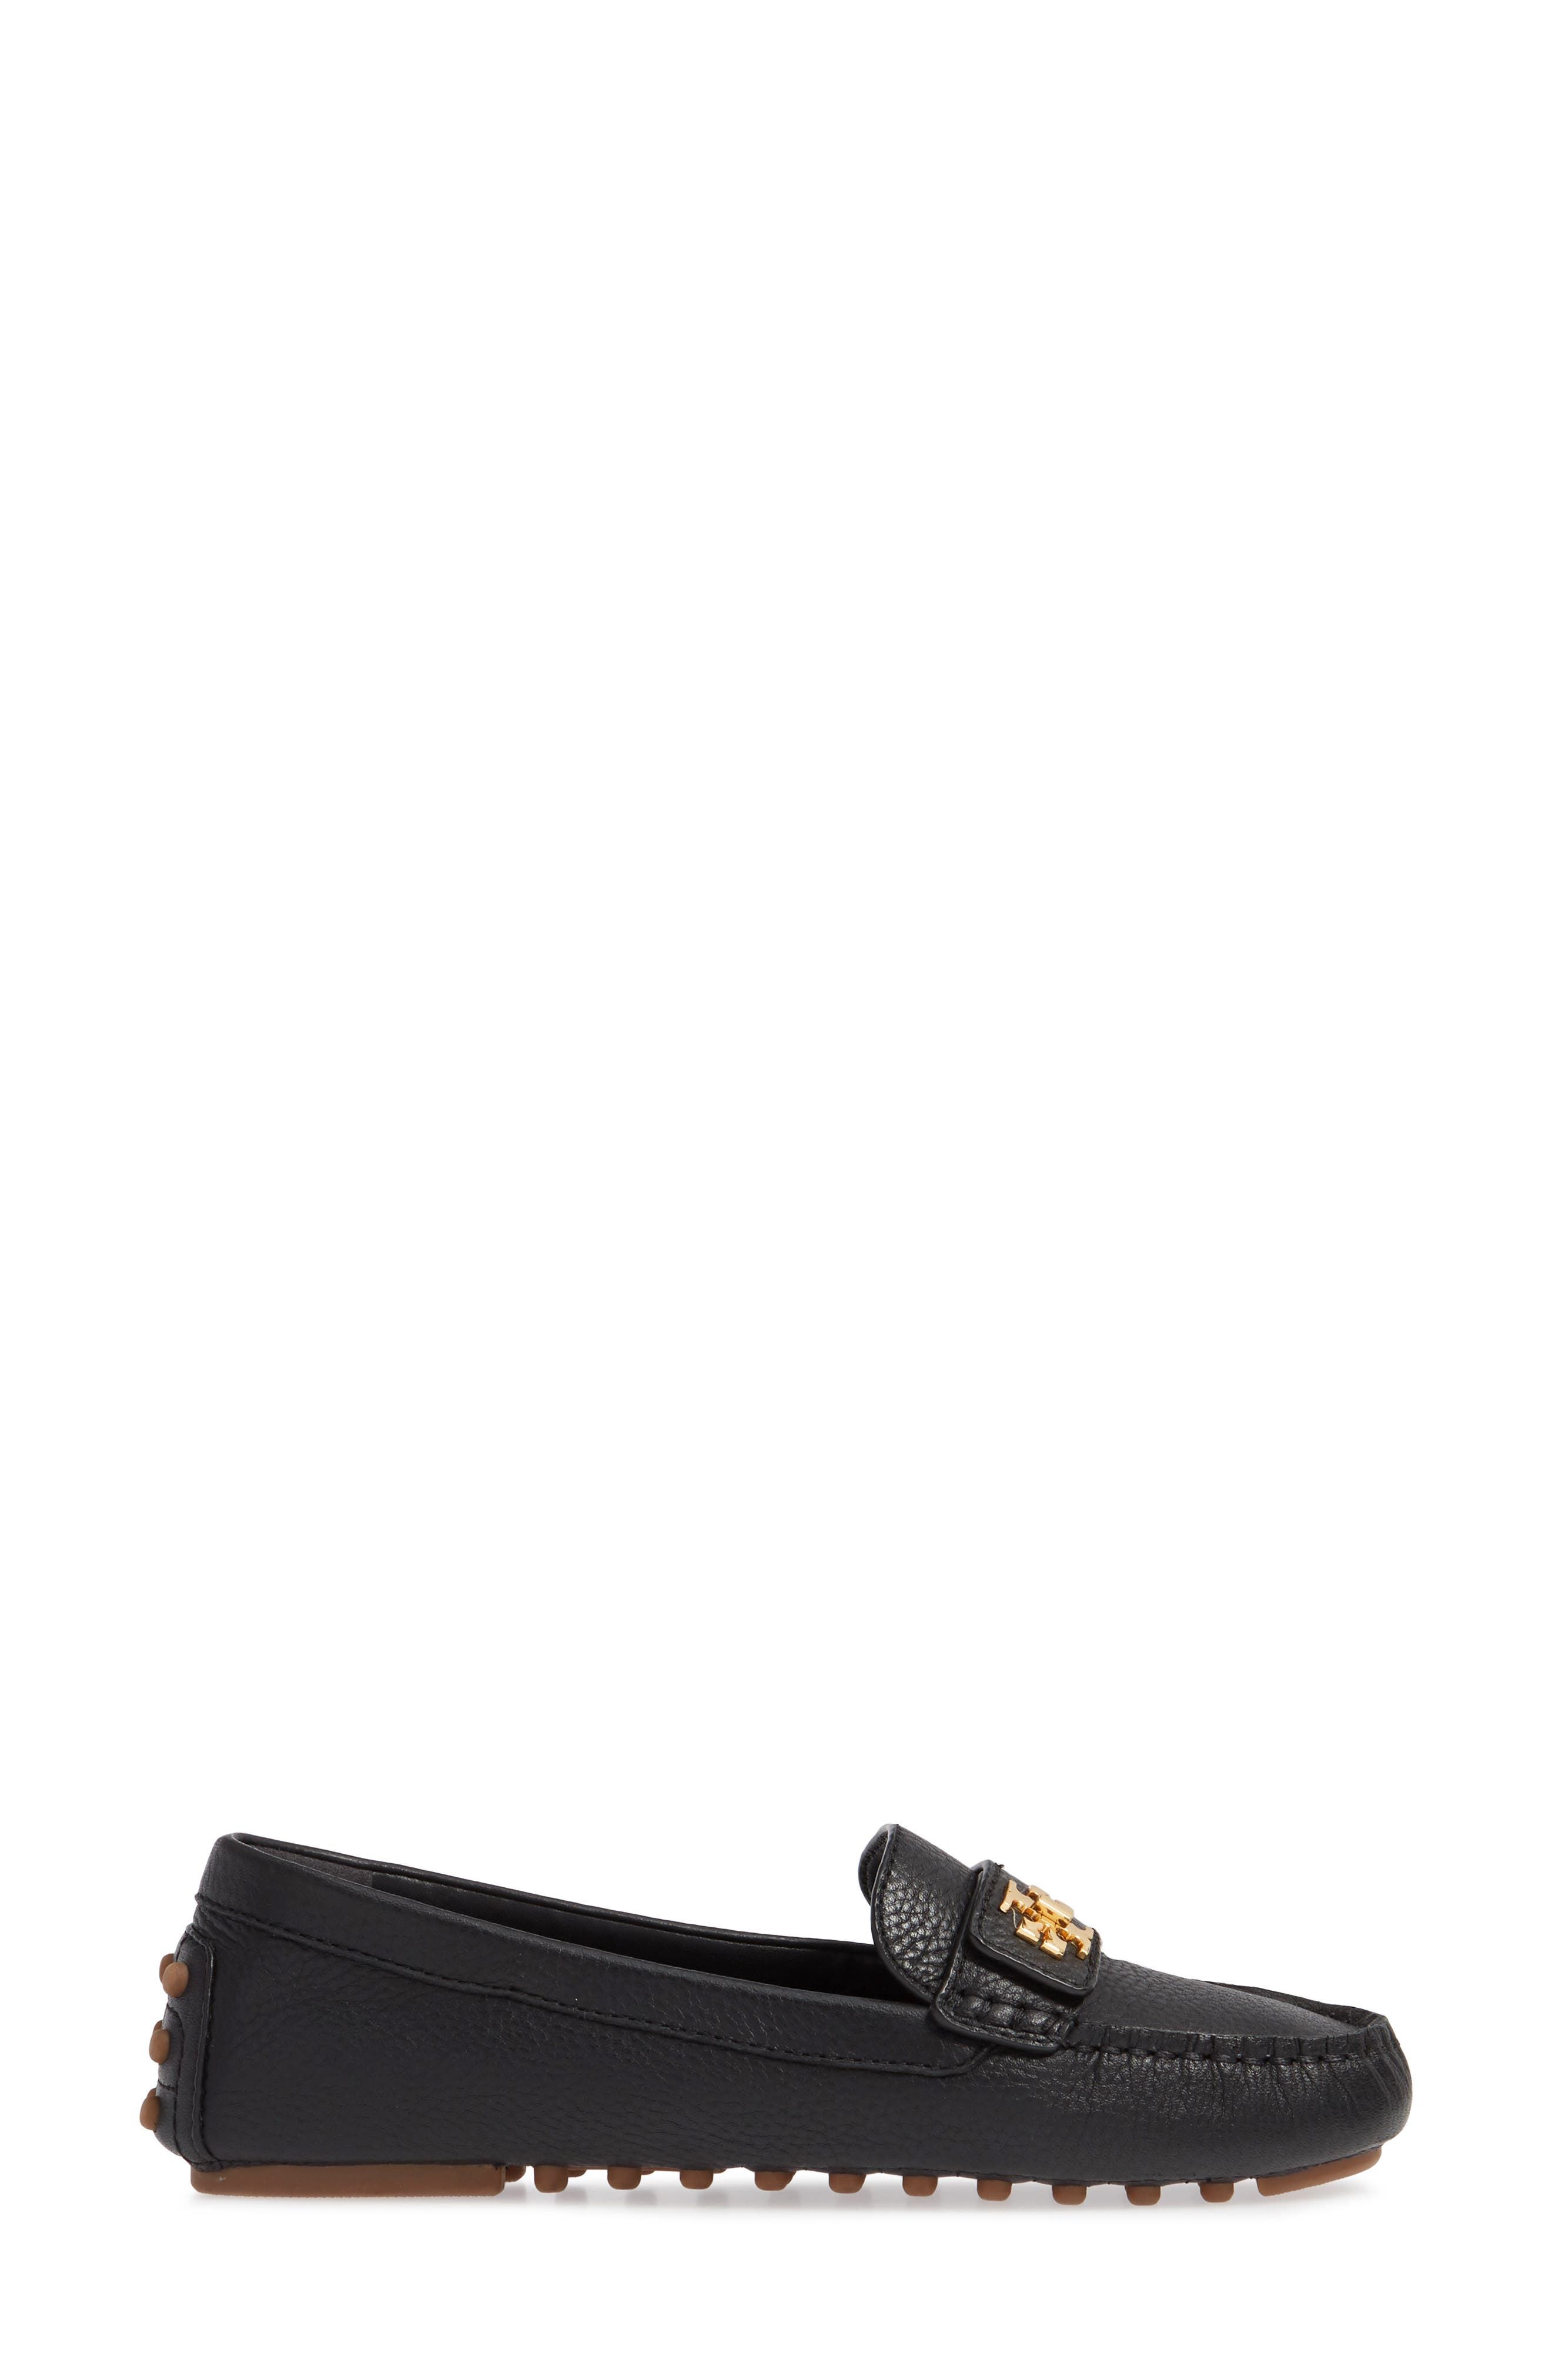 TORY BURCH, Kira Driving Loafer, Alternate thumbnail 3, color, PERFECT BLACK